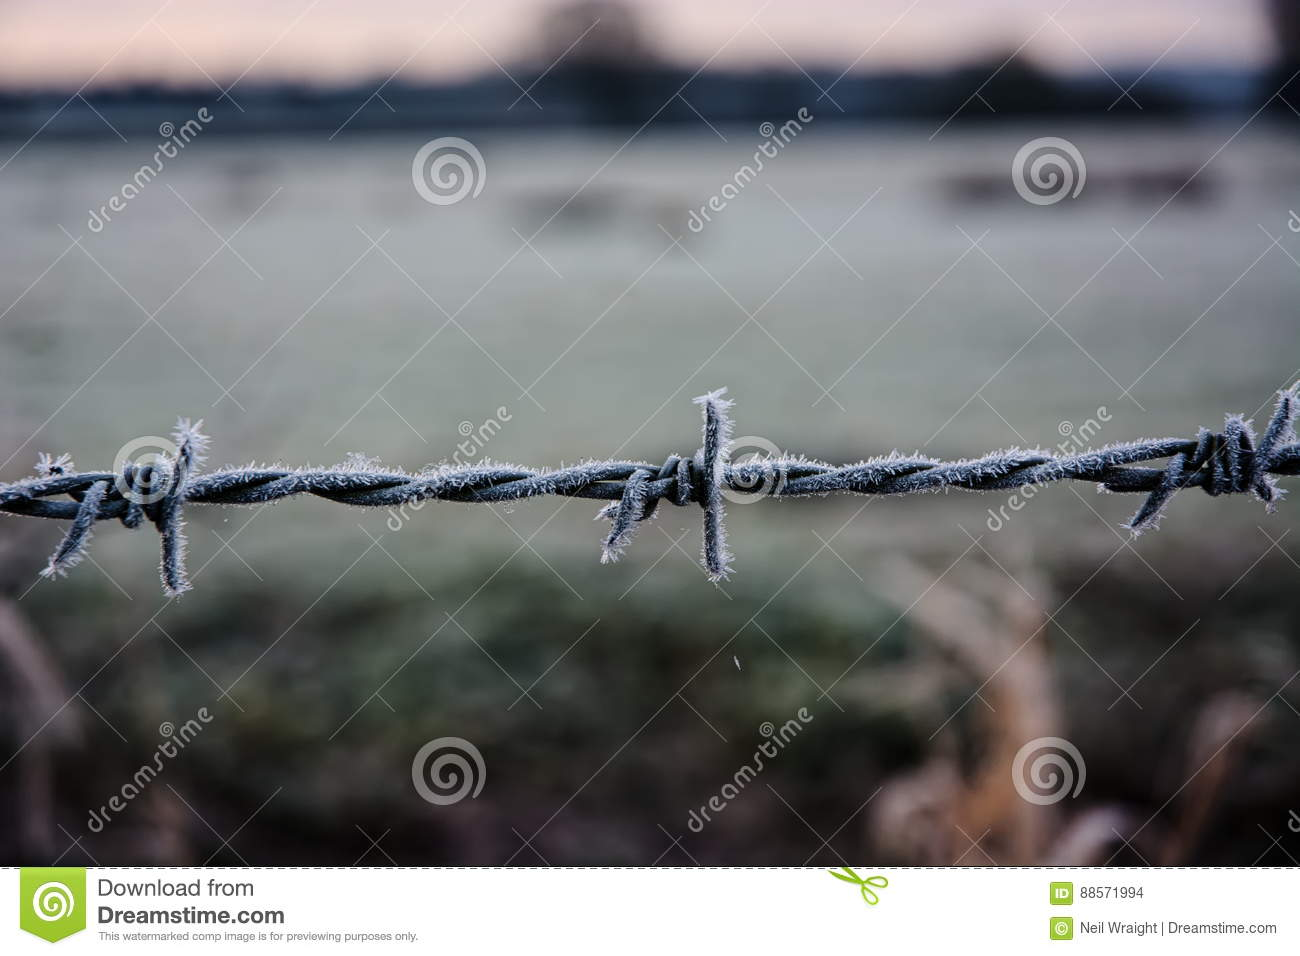 Frost on barbed wire. stock photo. Image of wire, business - 88571994